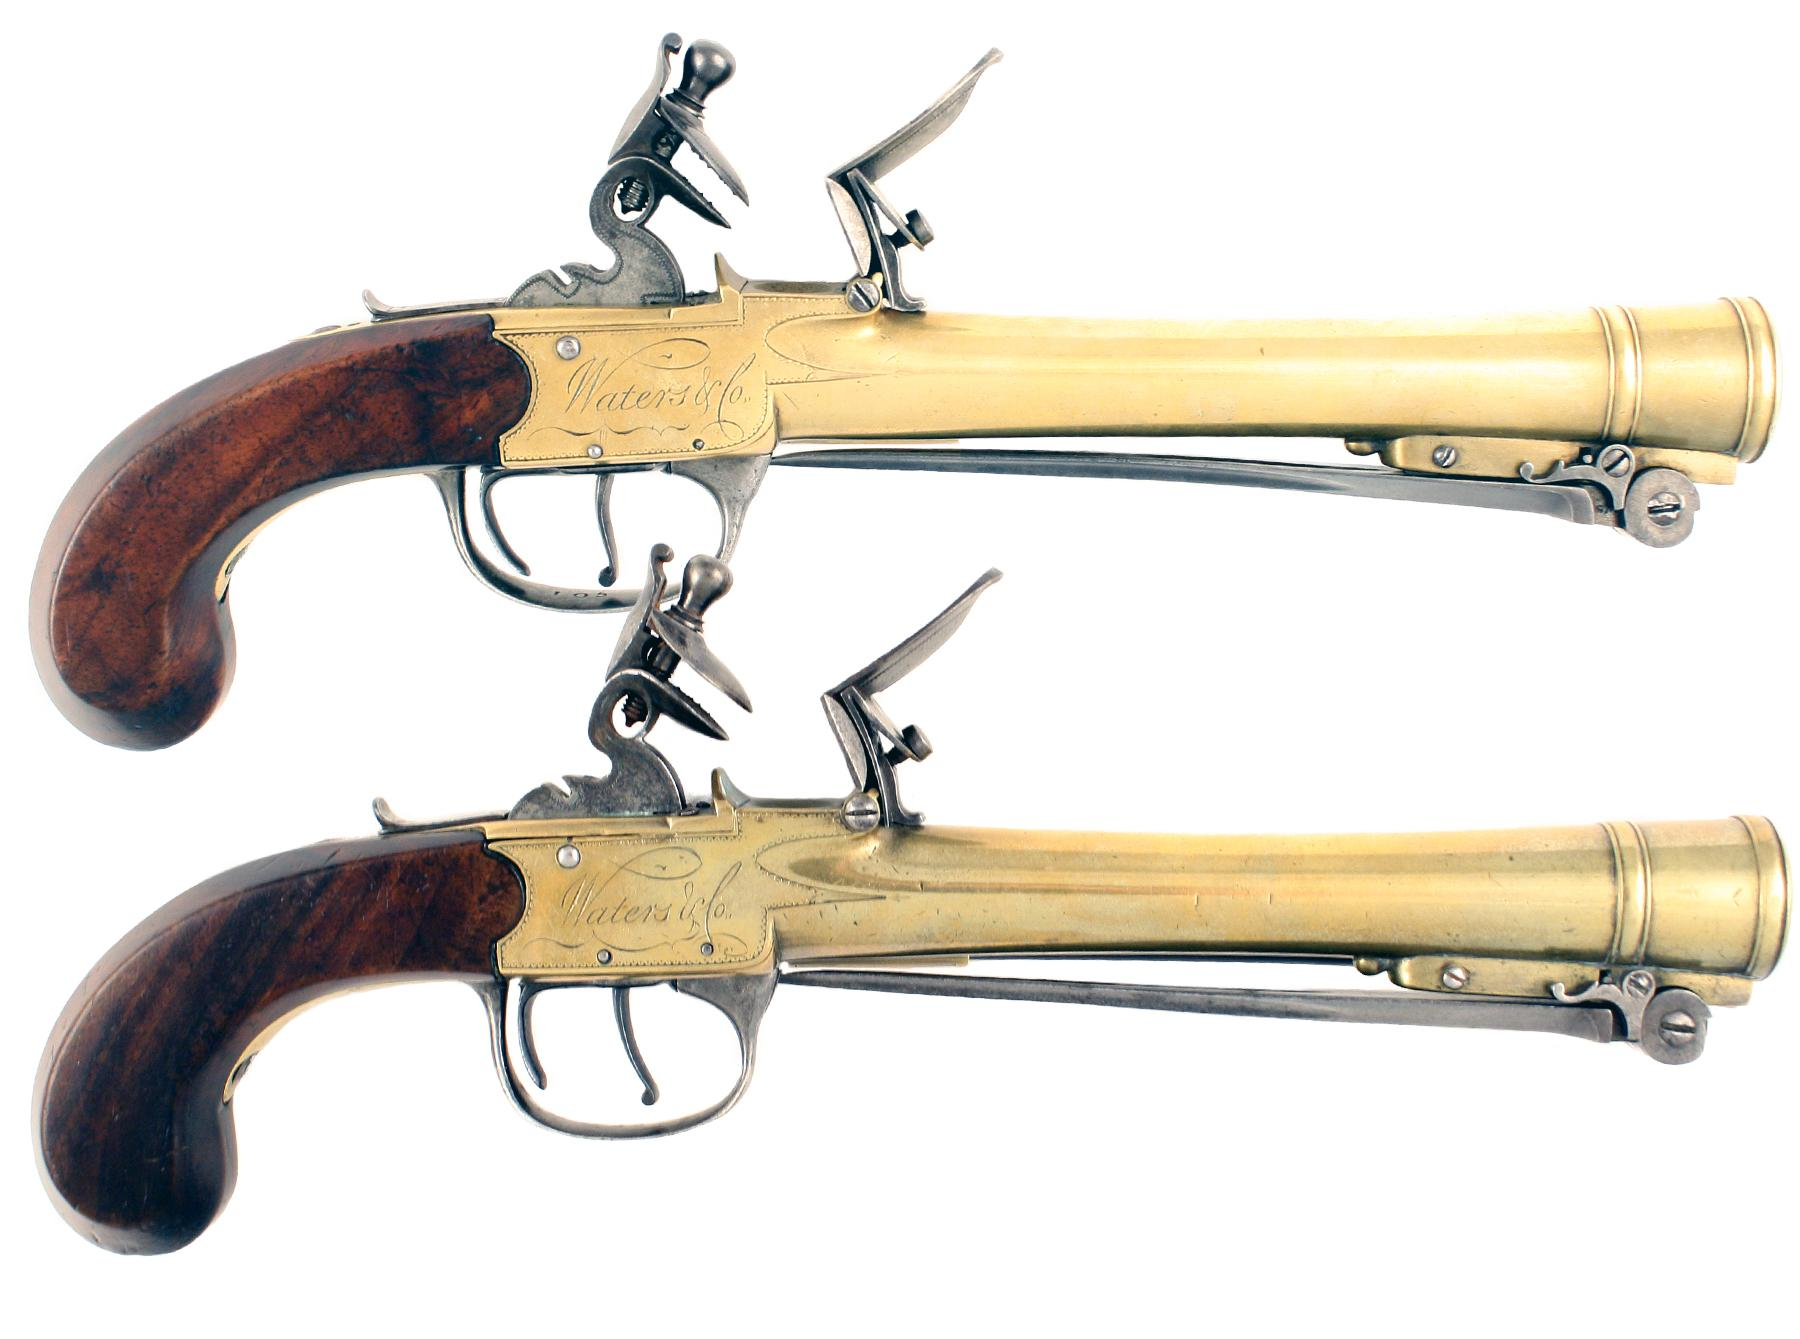 A Rare Pair of Waters Blunderbuss Pistols